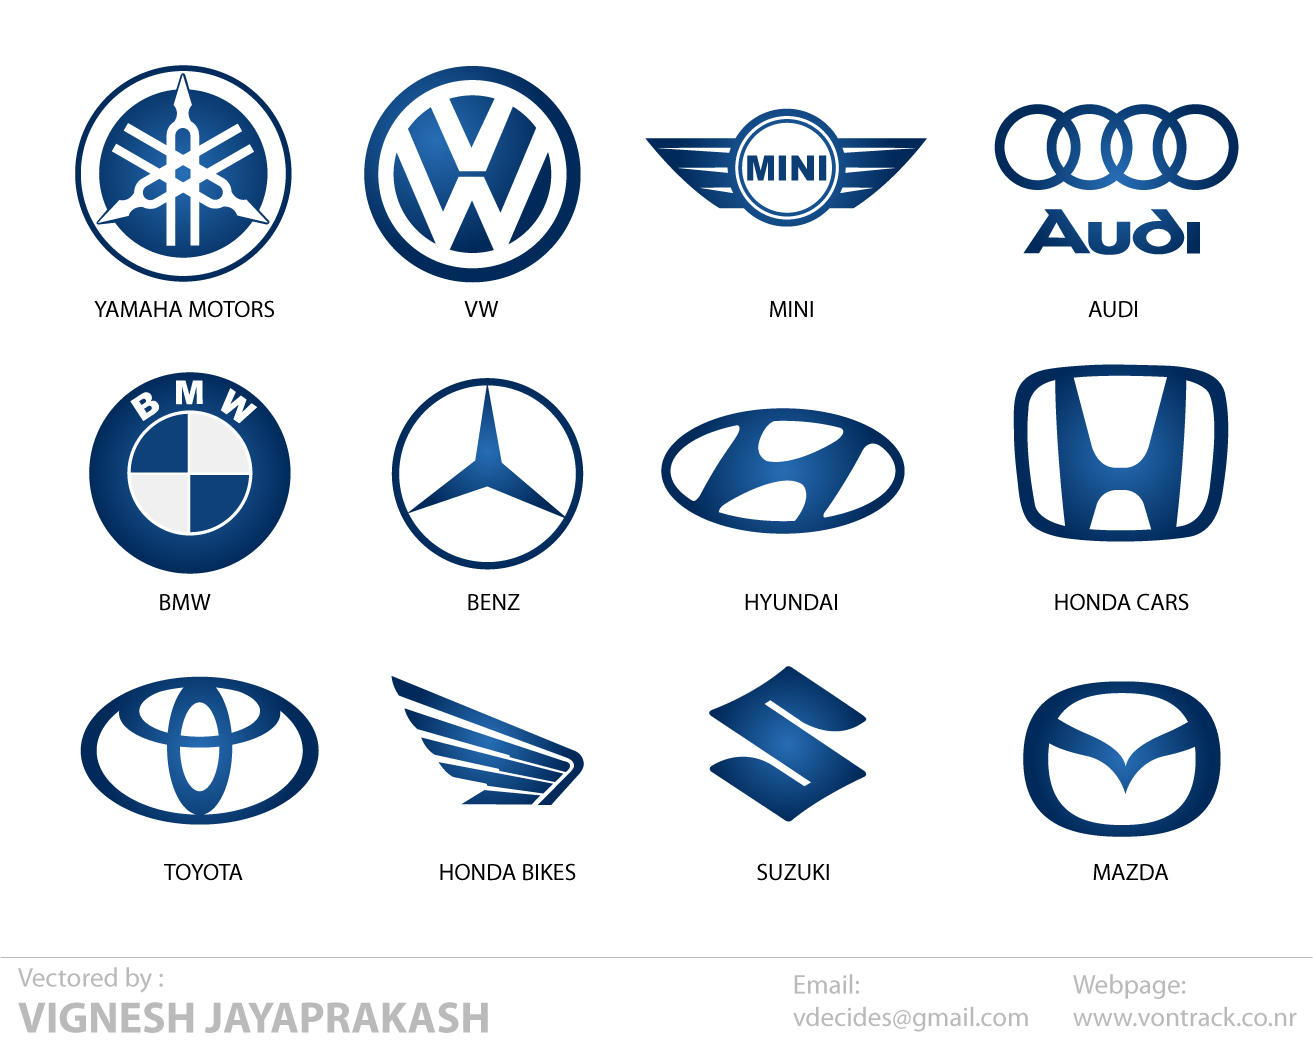 Automotive Logos by vdecides on DeviantArt